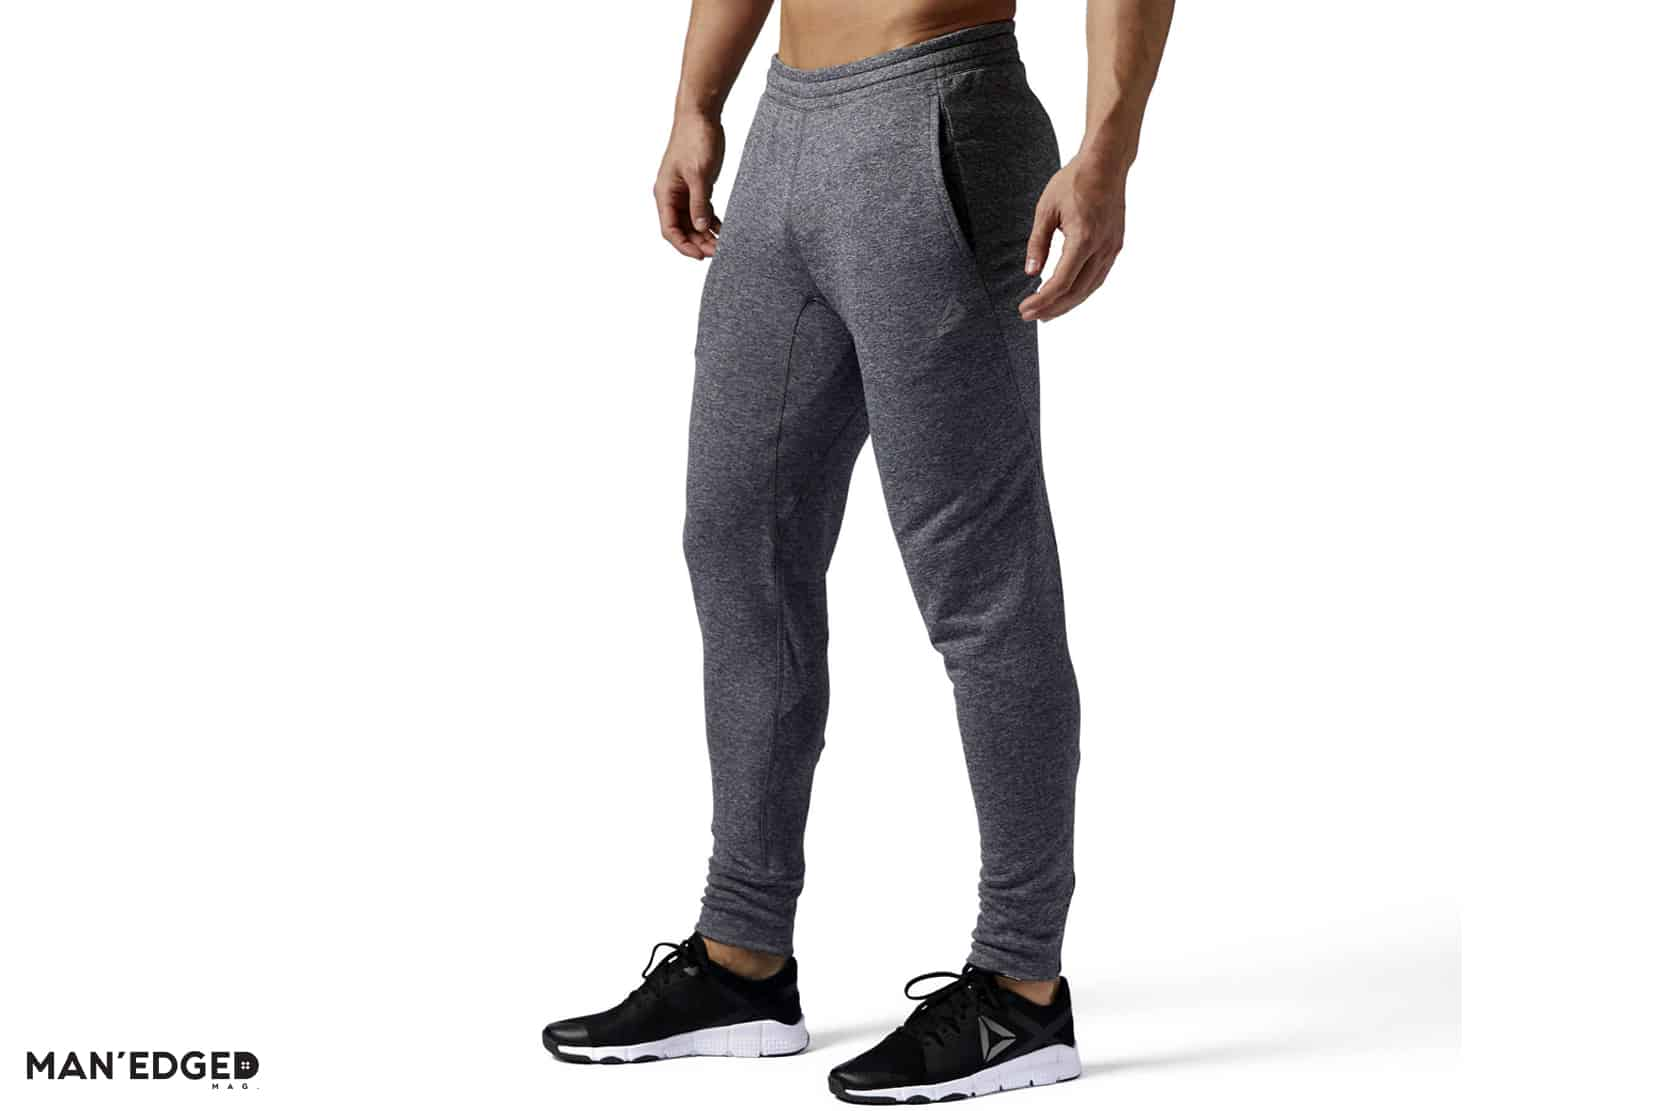 How to Gift to the Athleisure Obsessed Man featuring reebok casual JJWATT men's joggers